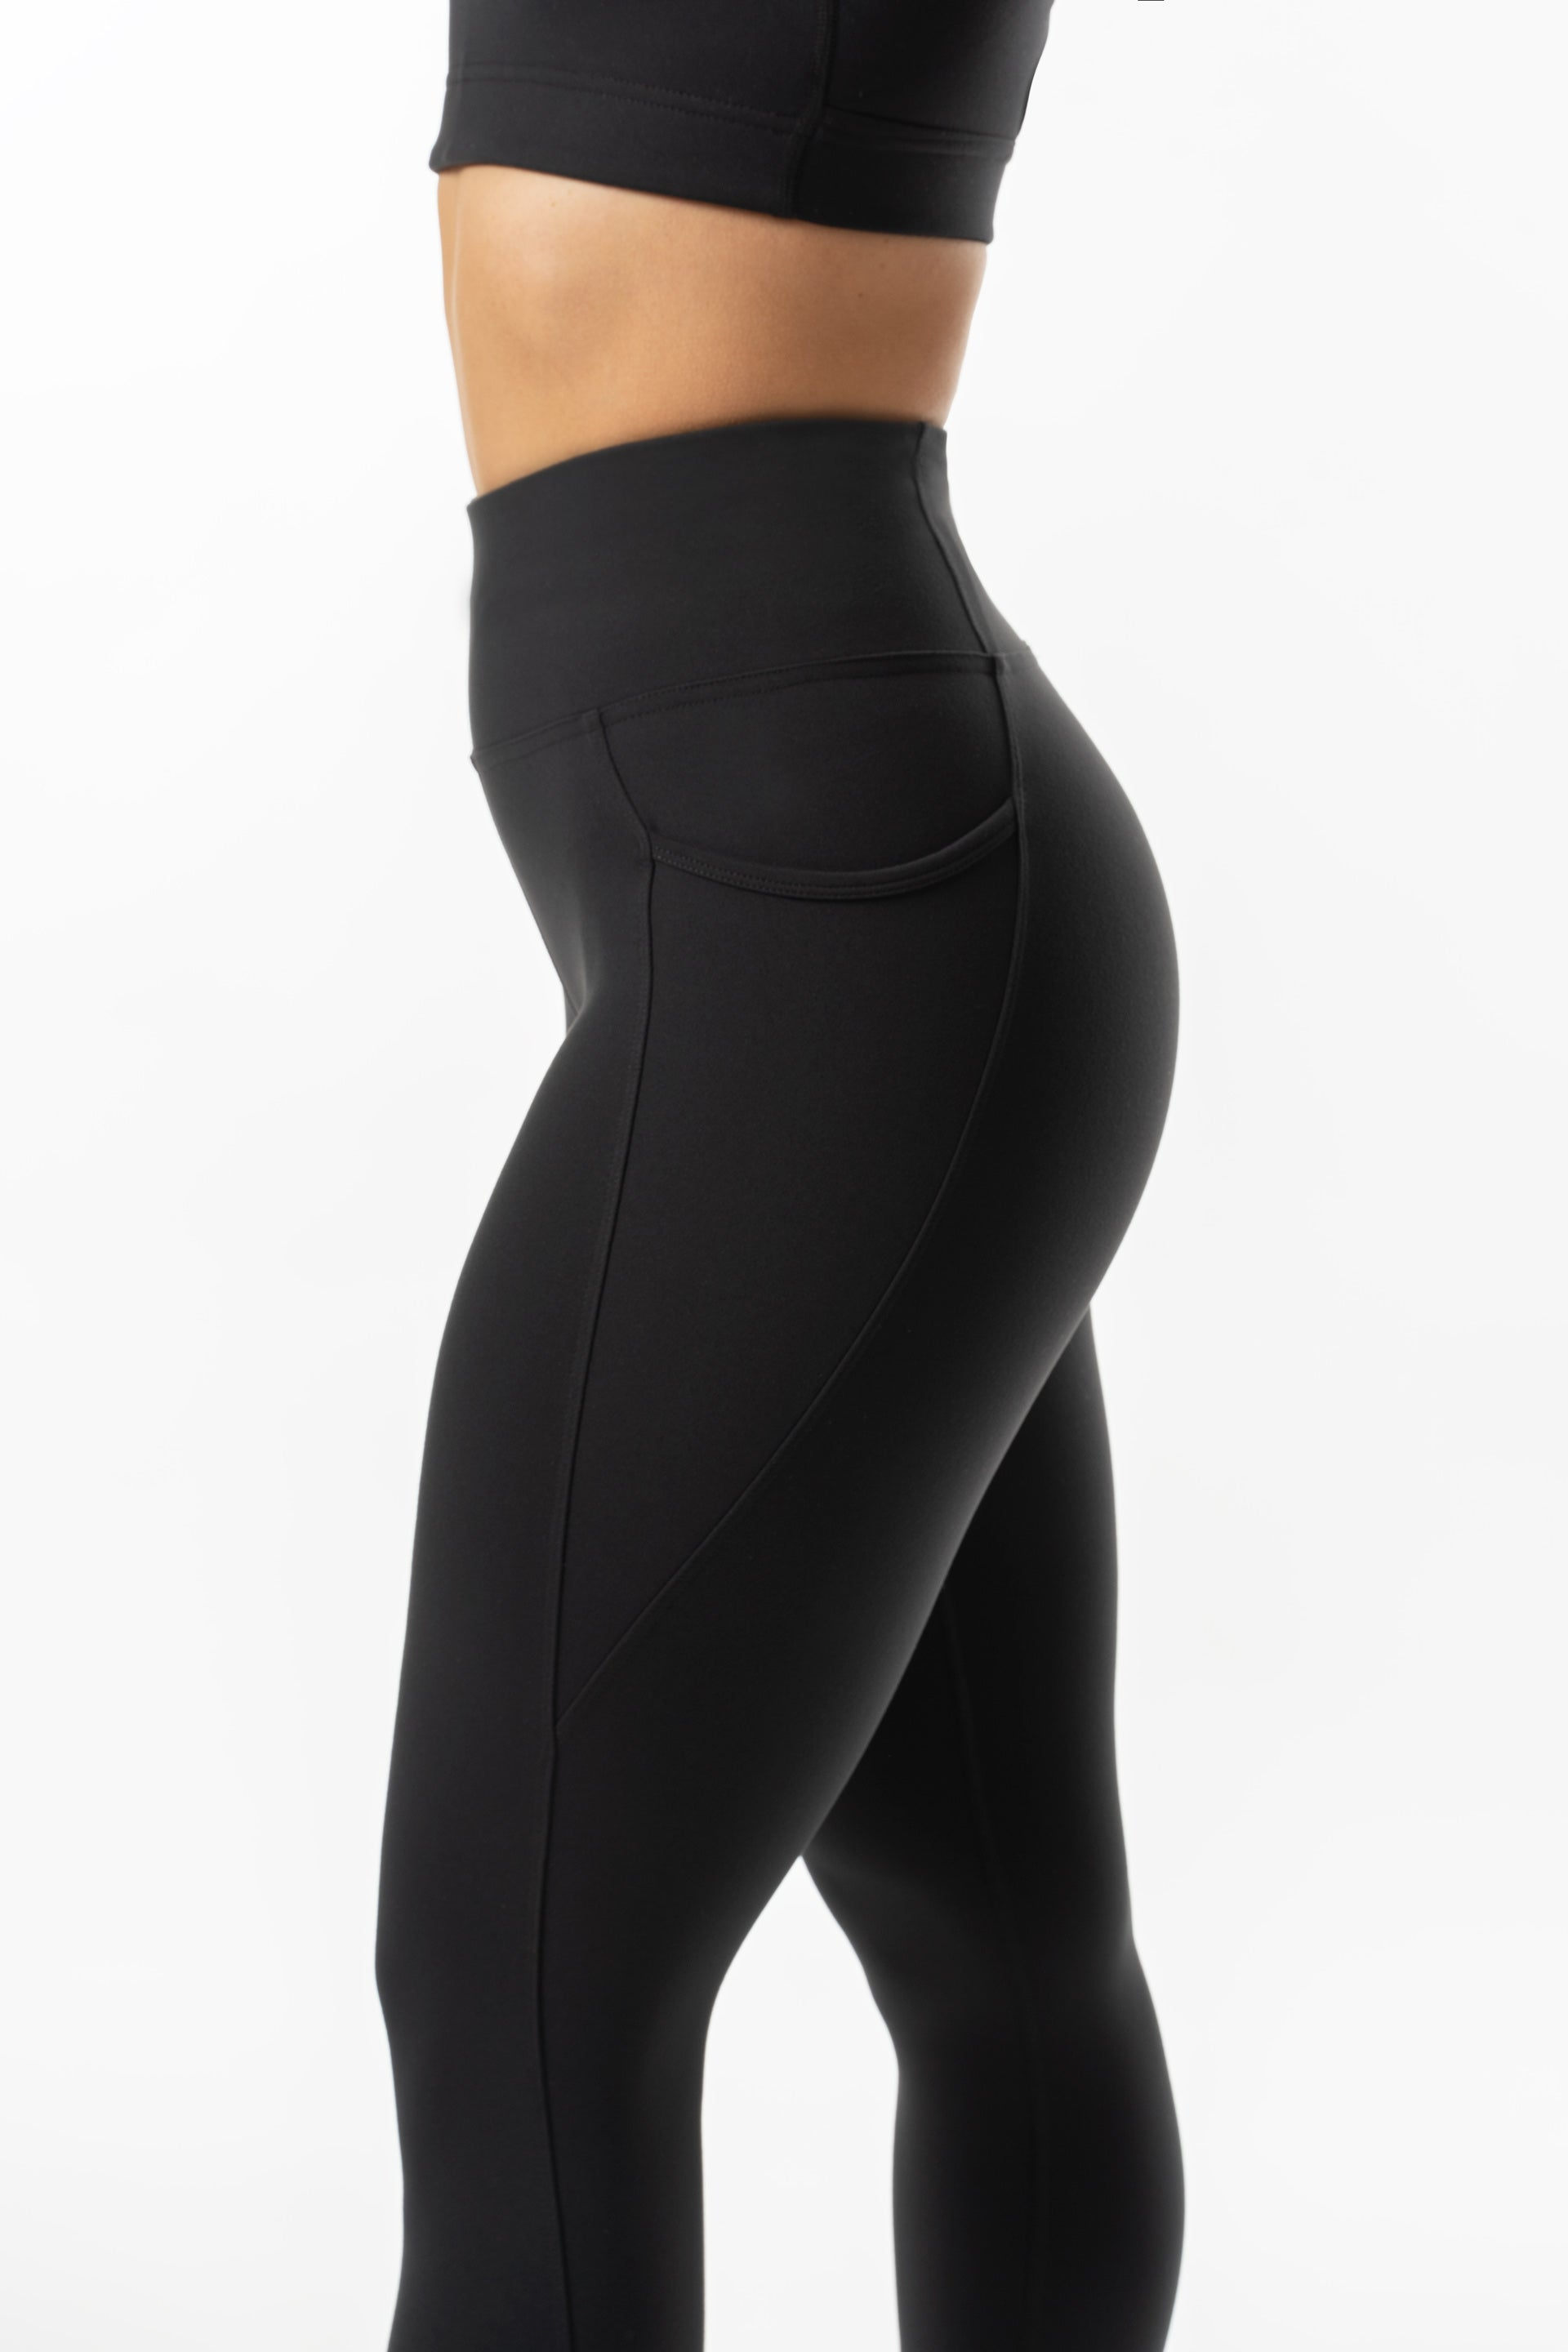 HIGH WAISTED SIDE POCKET F/L TIGHT - BLACK